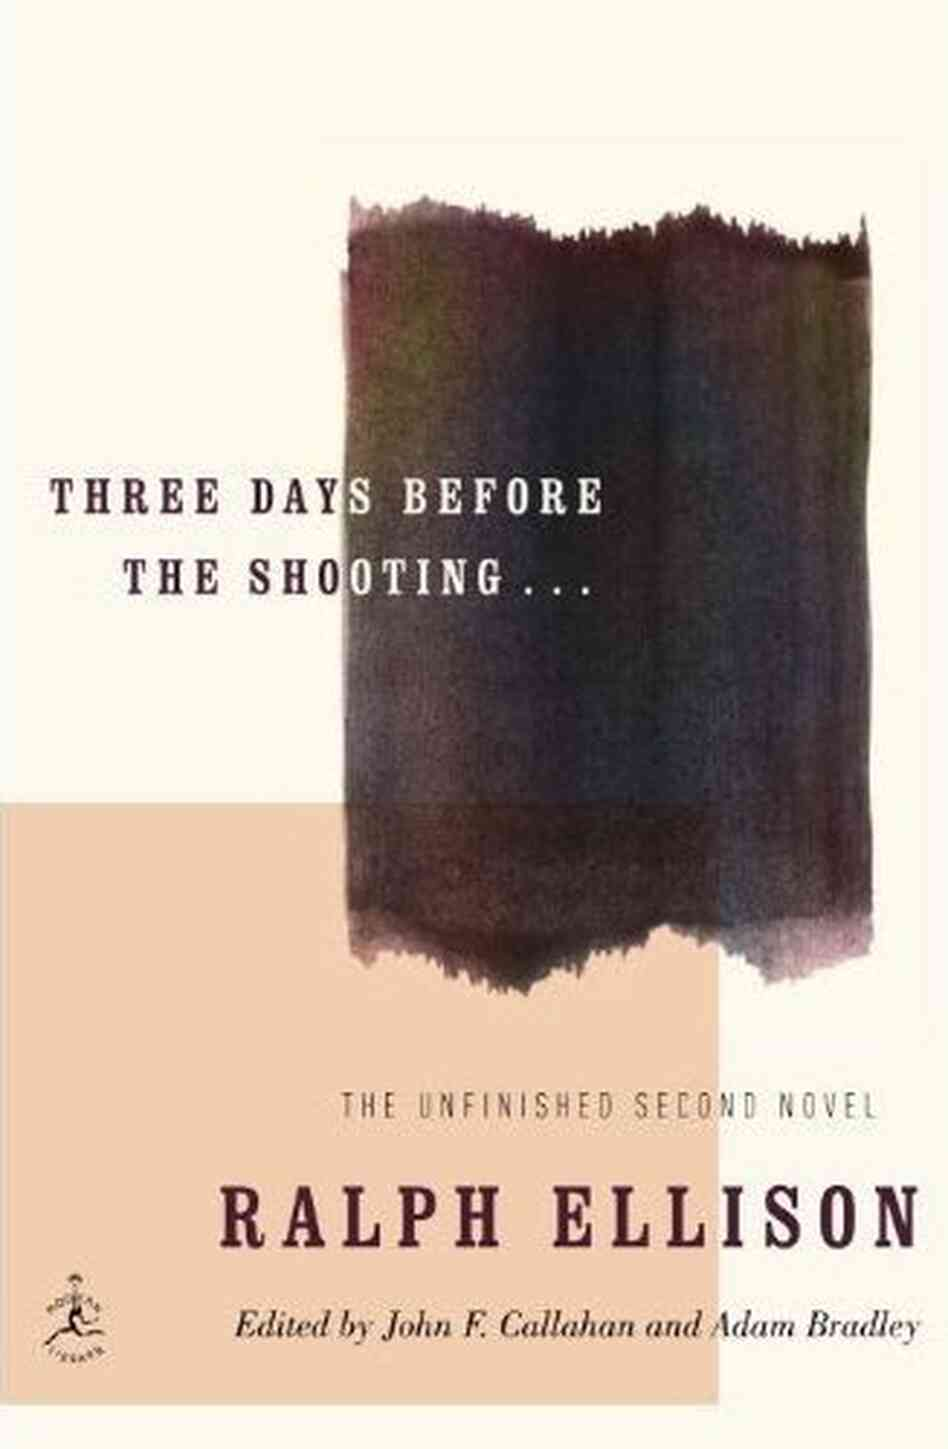 Three Days Before the Shooting